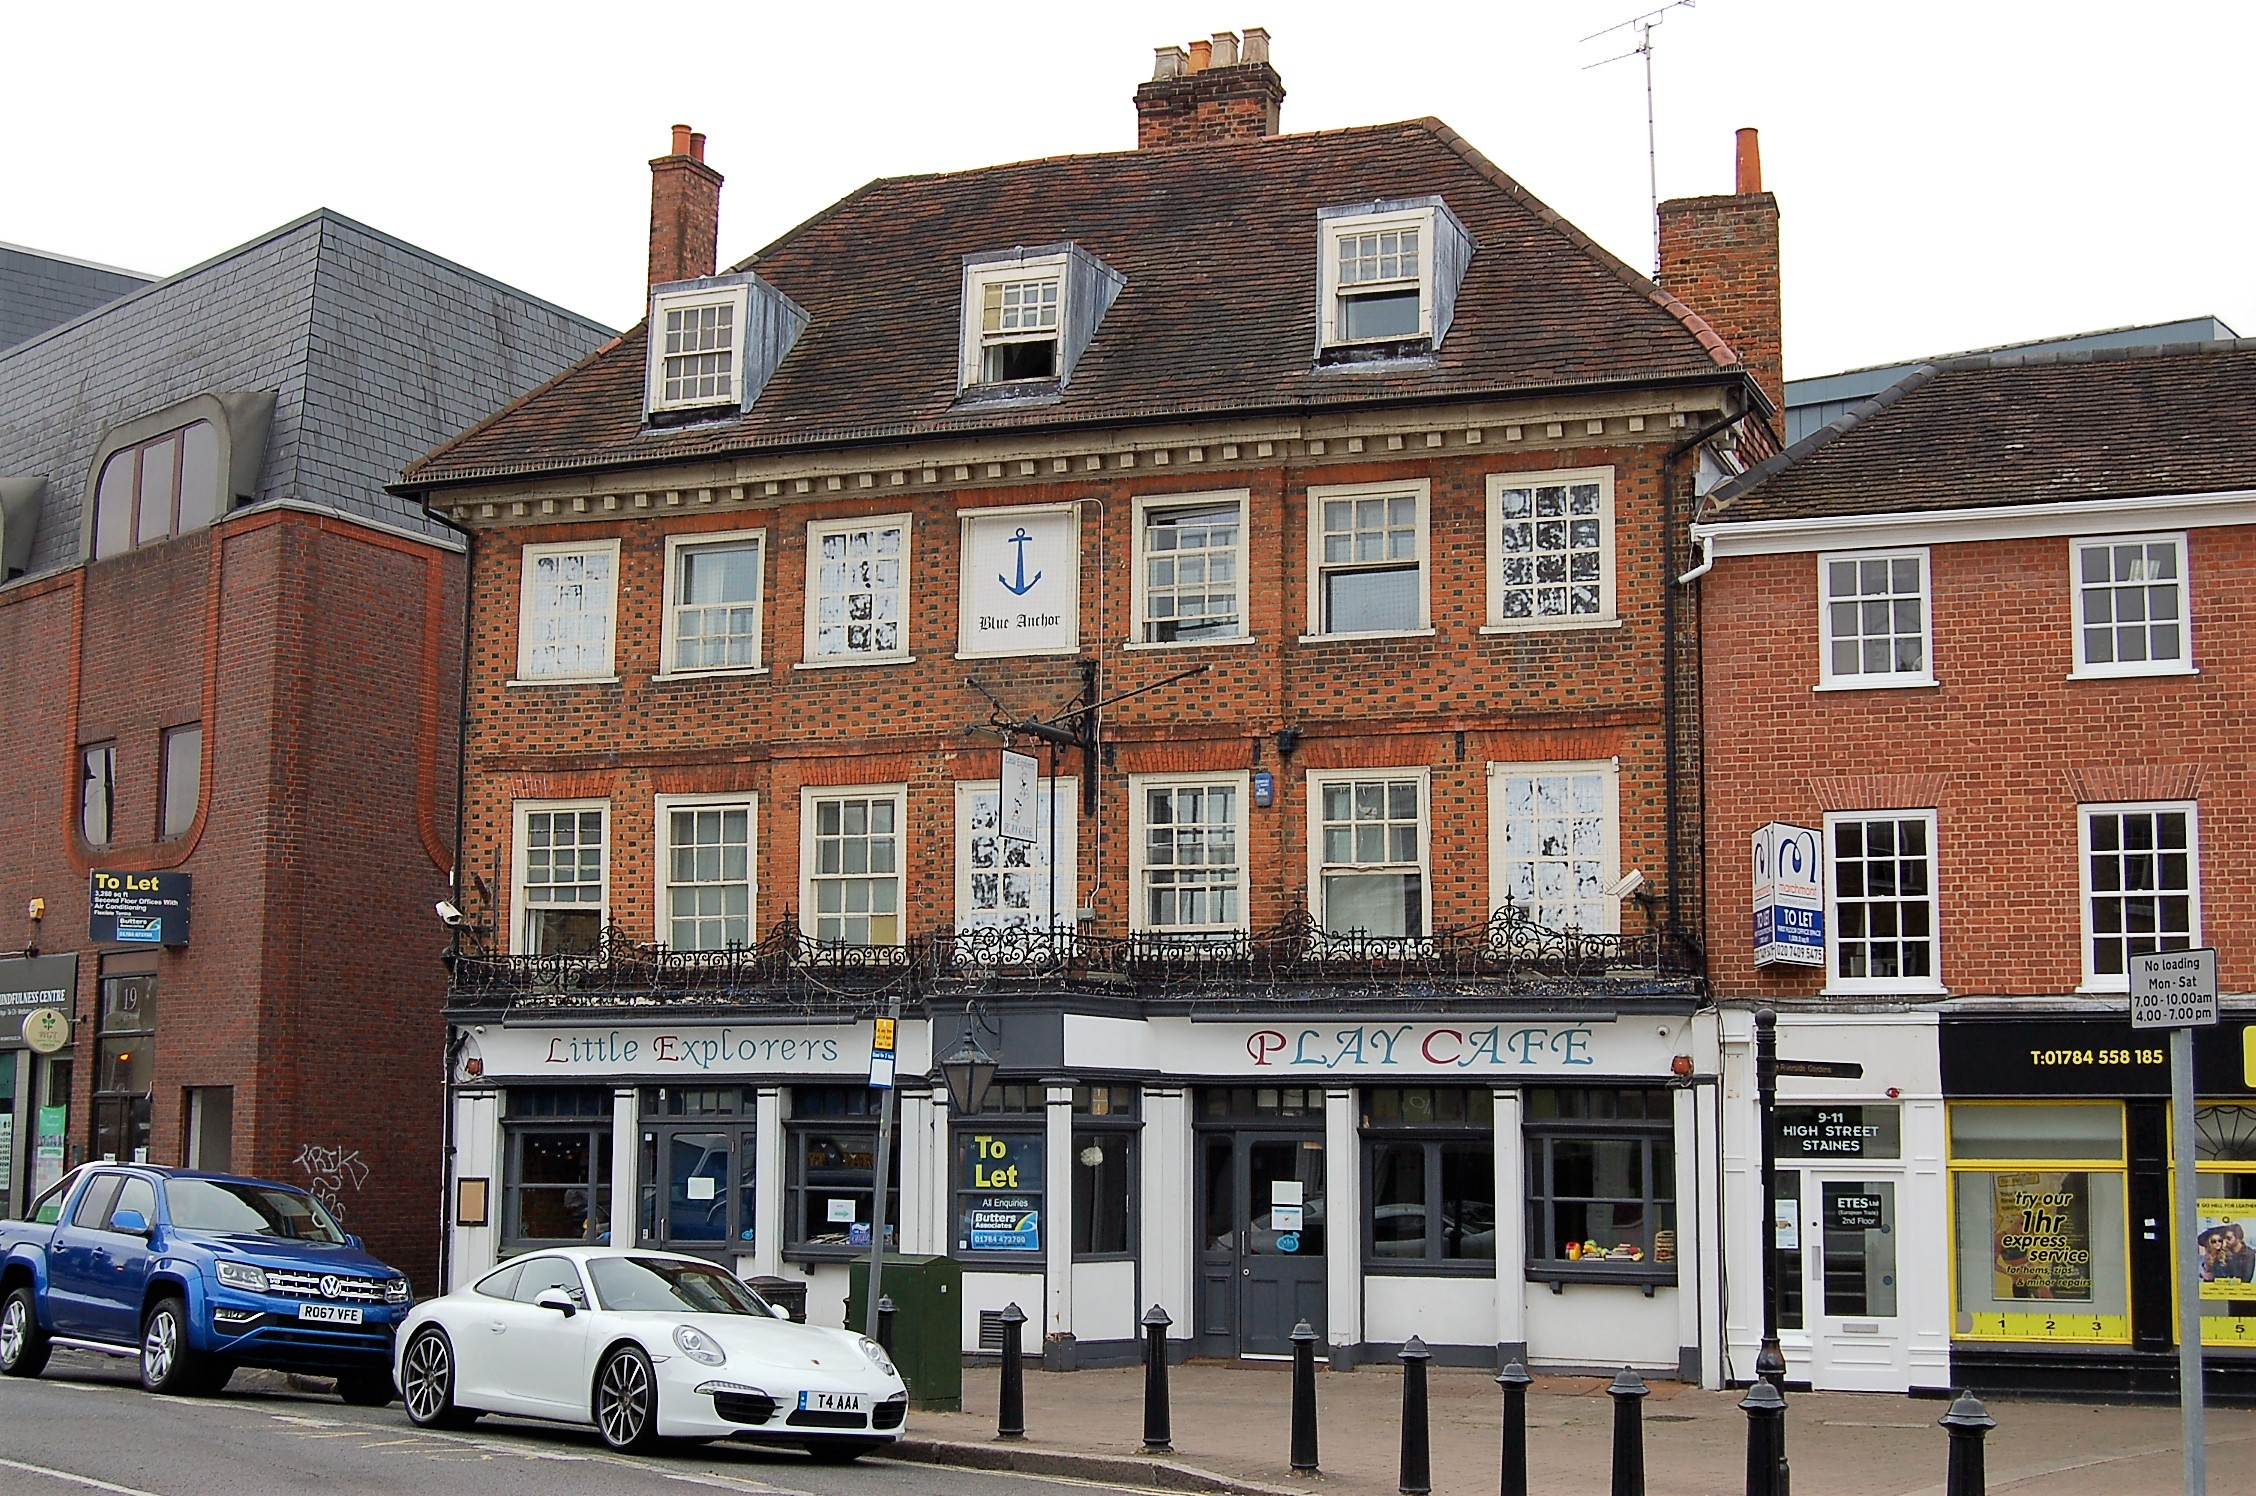 13-15 High Street, Staines